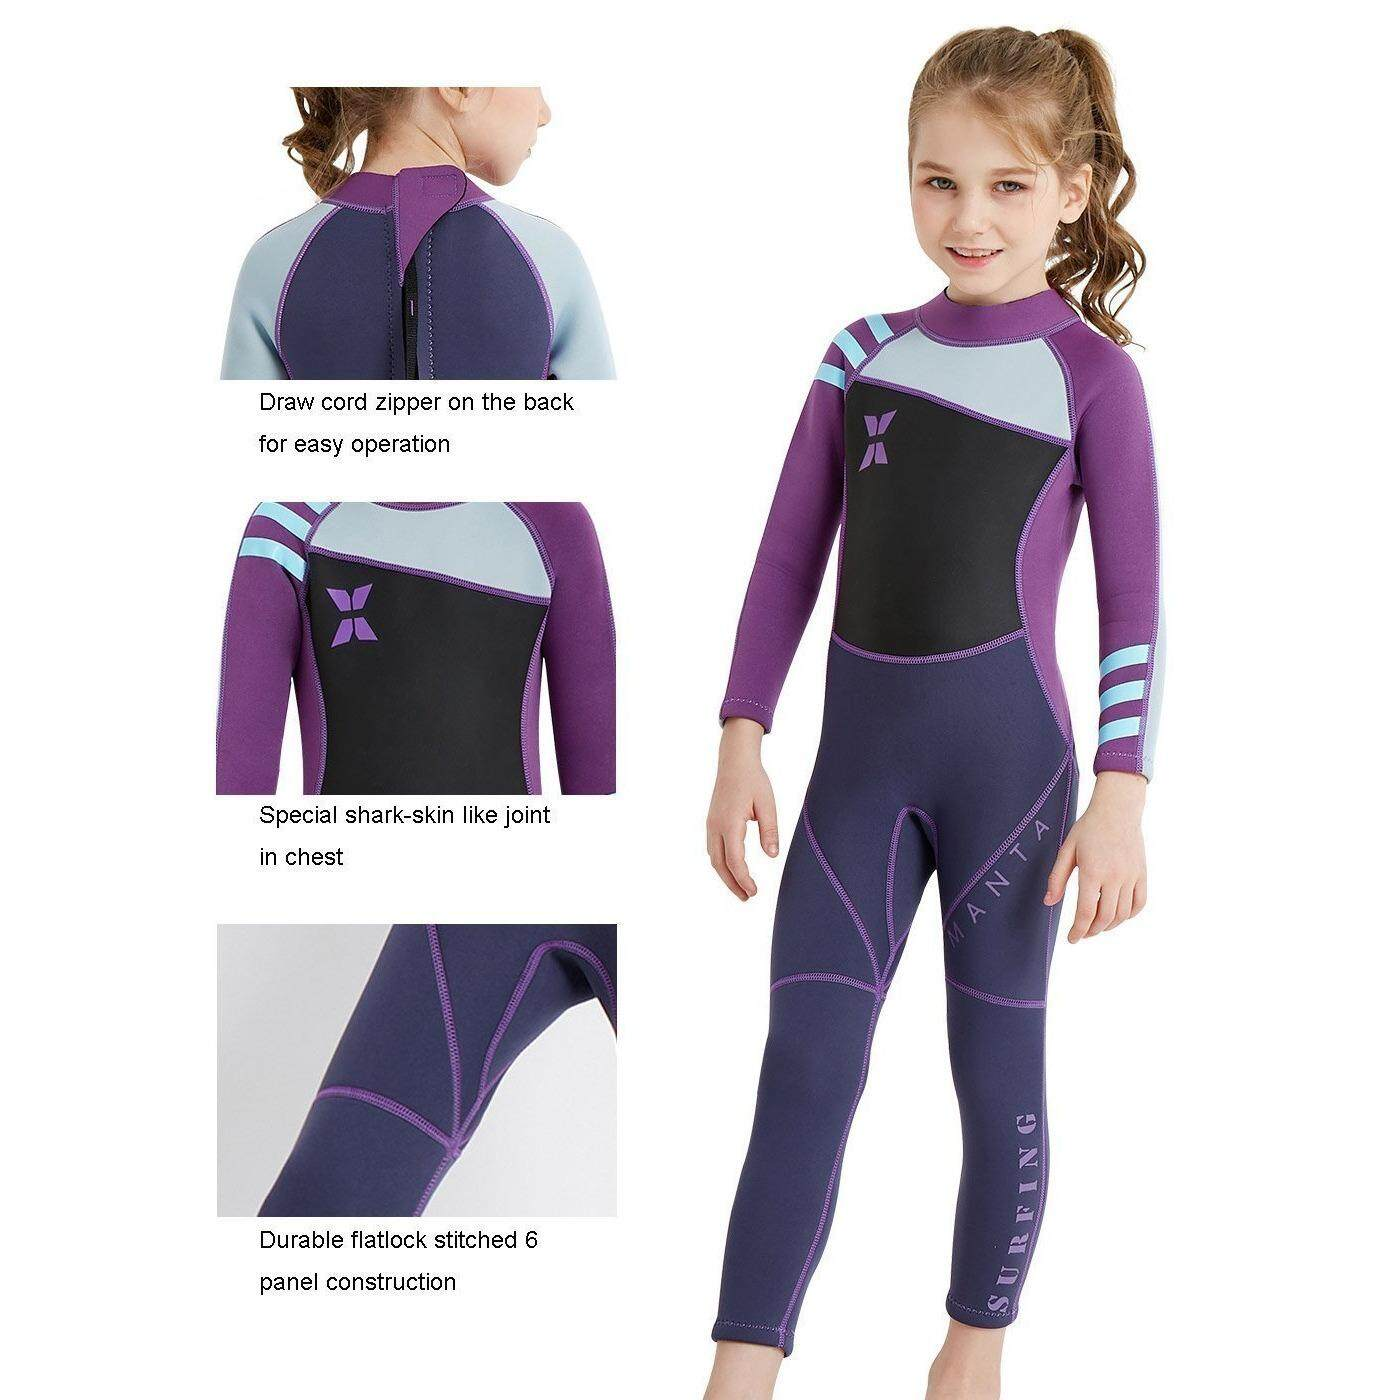 Kids 25mm Neoprene Wetsuit Upf 50 Quick Dry Swimming Costume